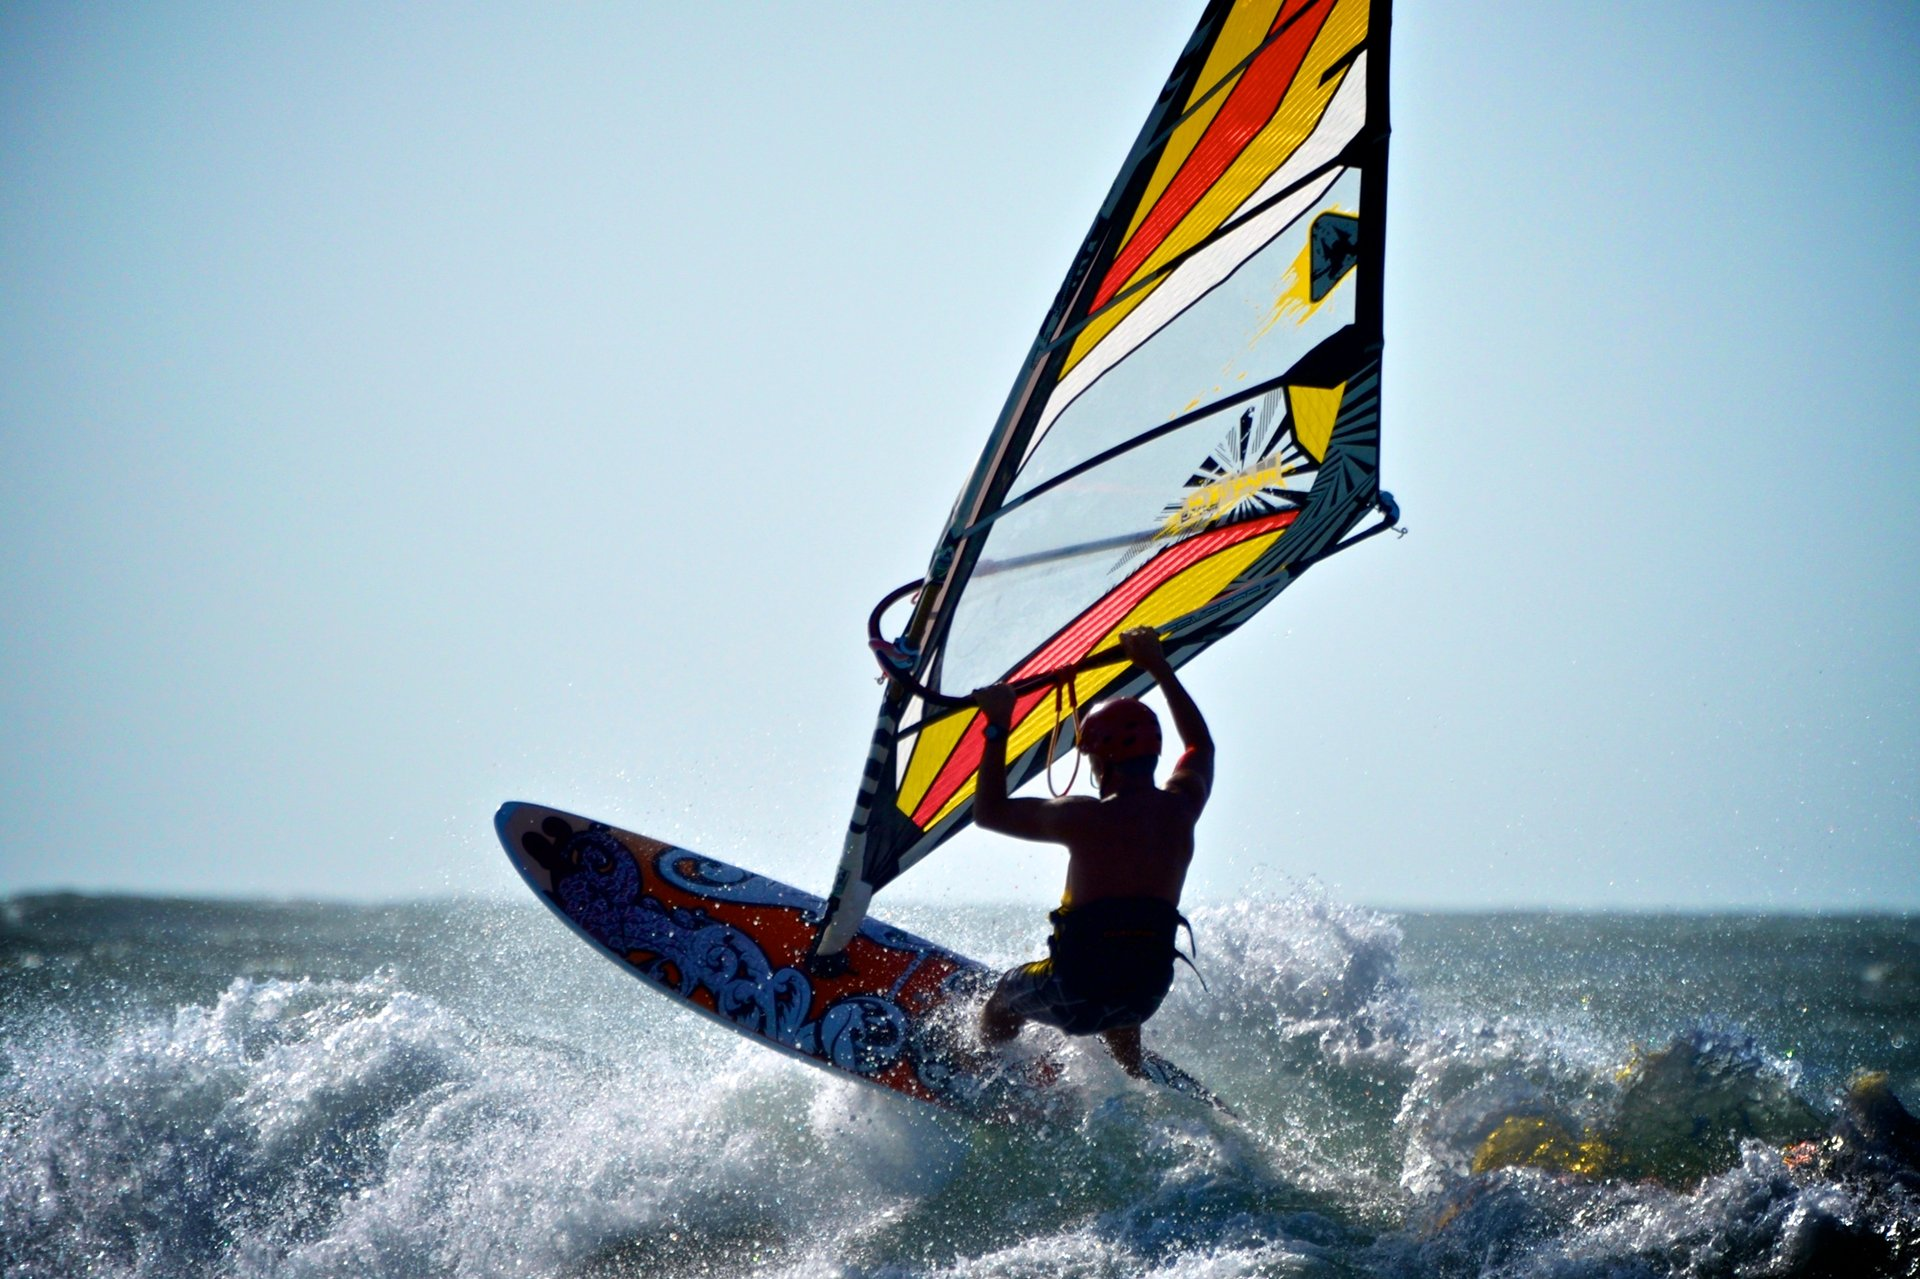 Best time for Kitesurfing and Windsurfing in Brazil 2020